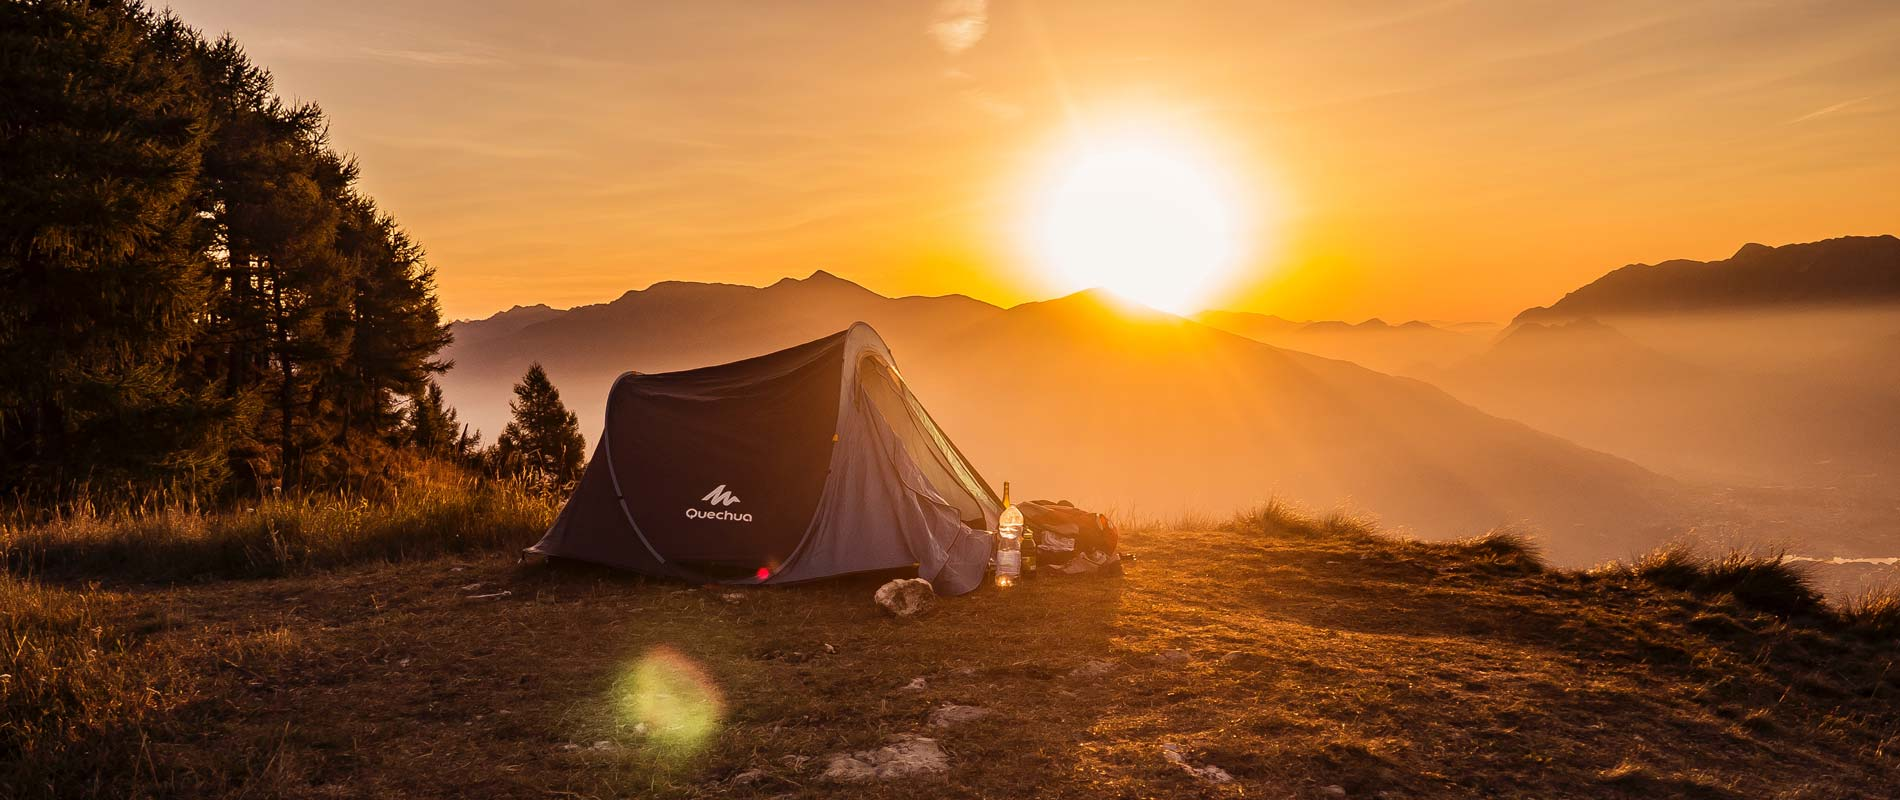 Top 7 health benefits of camping | Experience Freedom